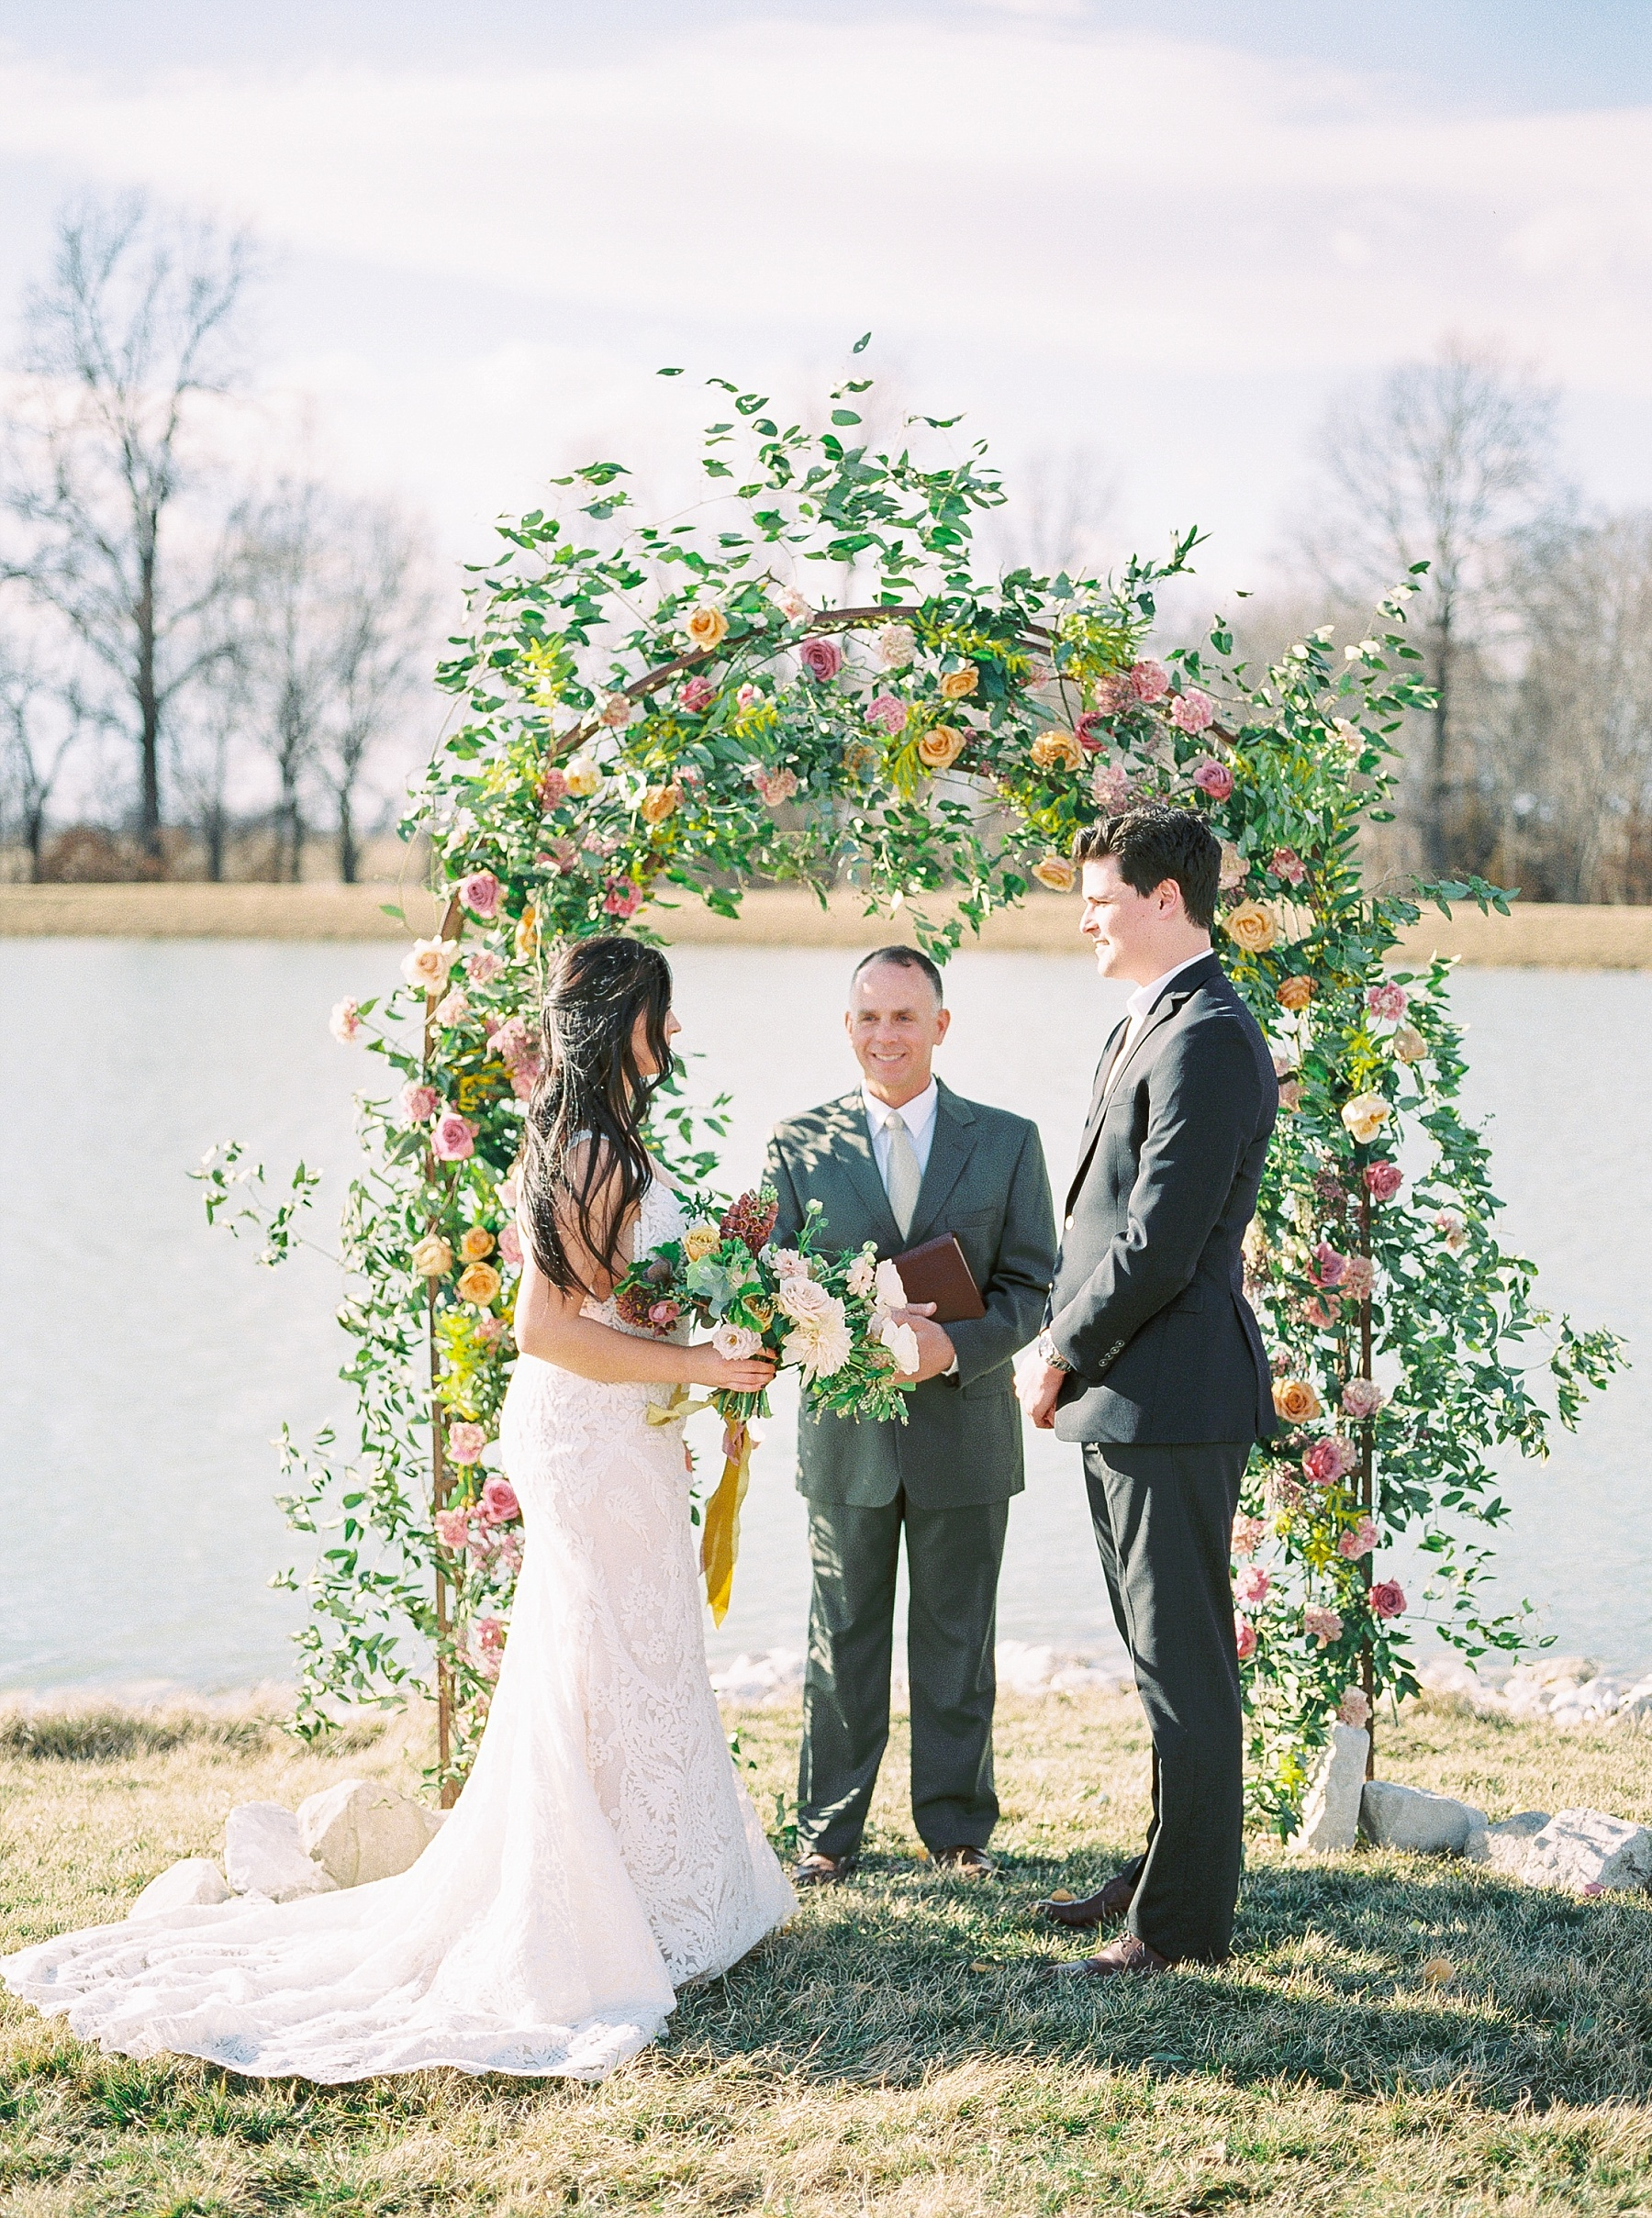 Intimate Lakeside Elopement at Emerson Fields All White Wedding Venue by Kelsi Kliethermes Photography Best Missouri and Maui Wedding Photographer_0028.jpg